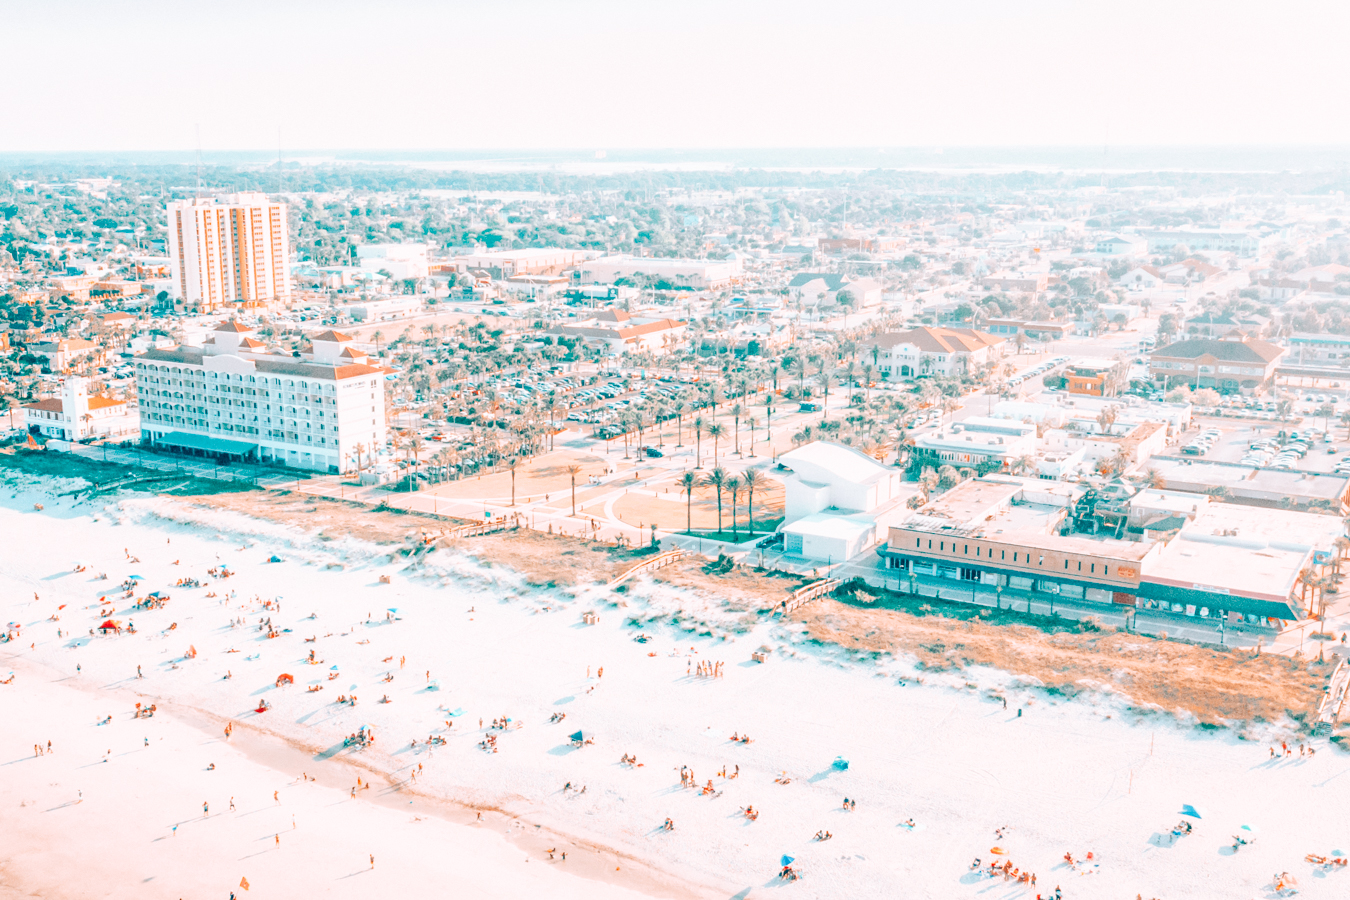 Jacksonville beach and buildings from above